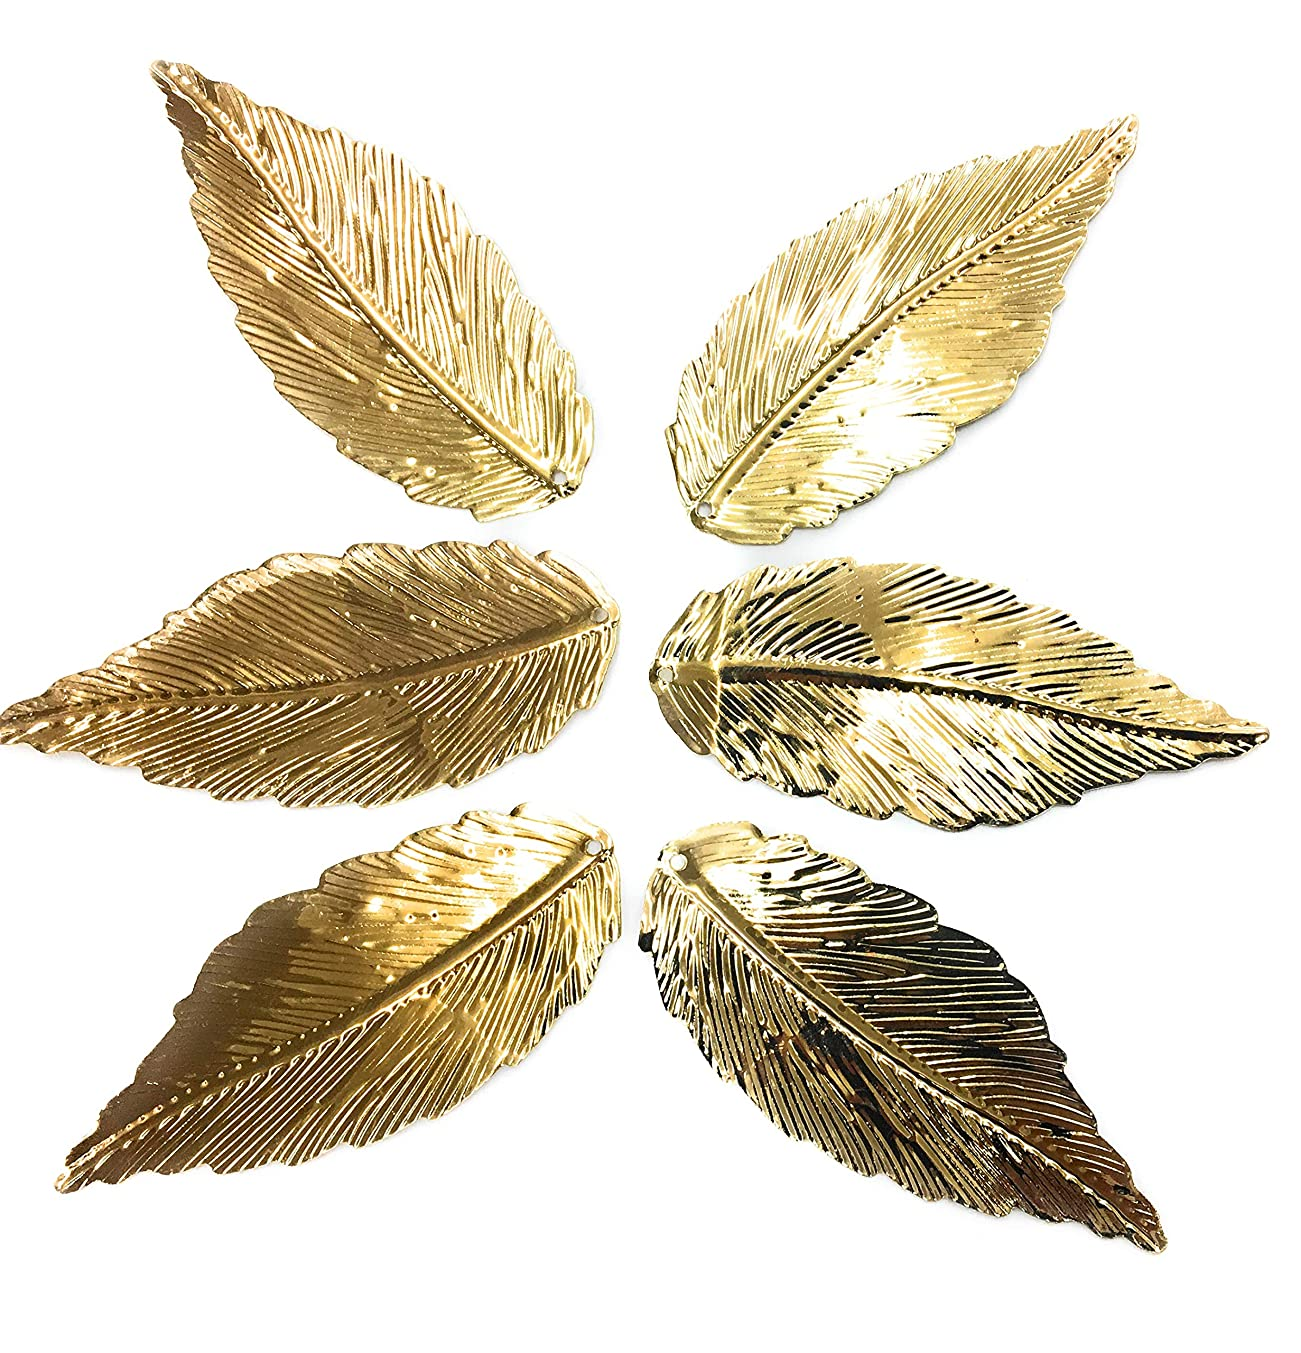 6 Metal Gold Leaf Findings Charms Pendant 2-3/4'' x 1-1/8